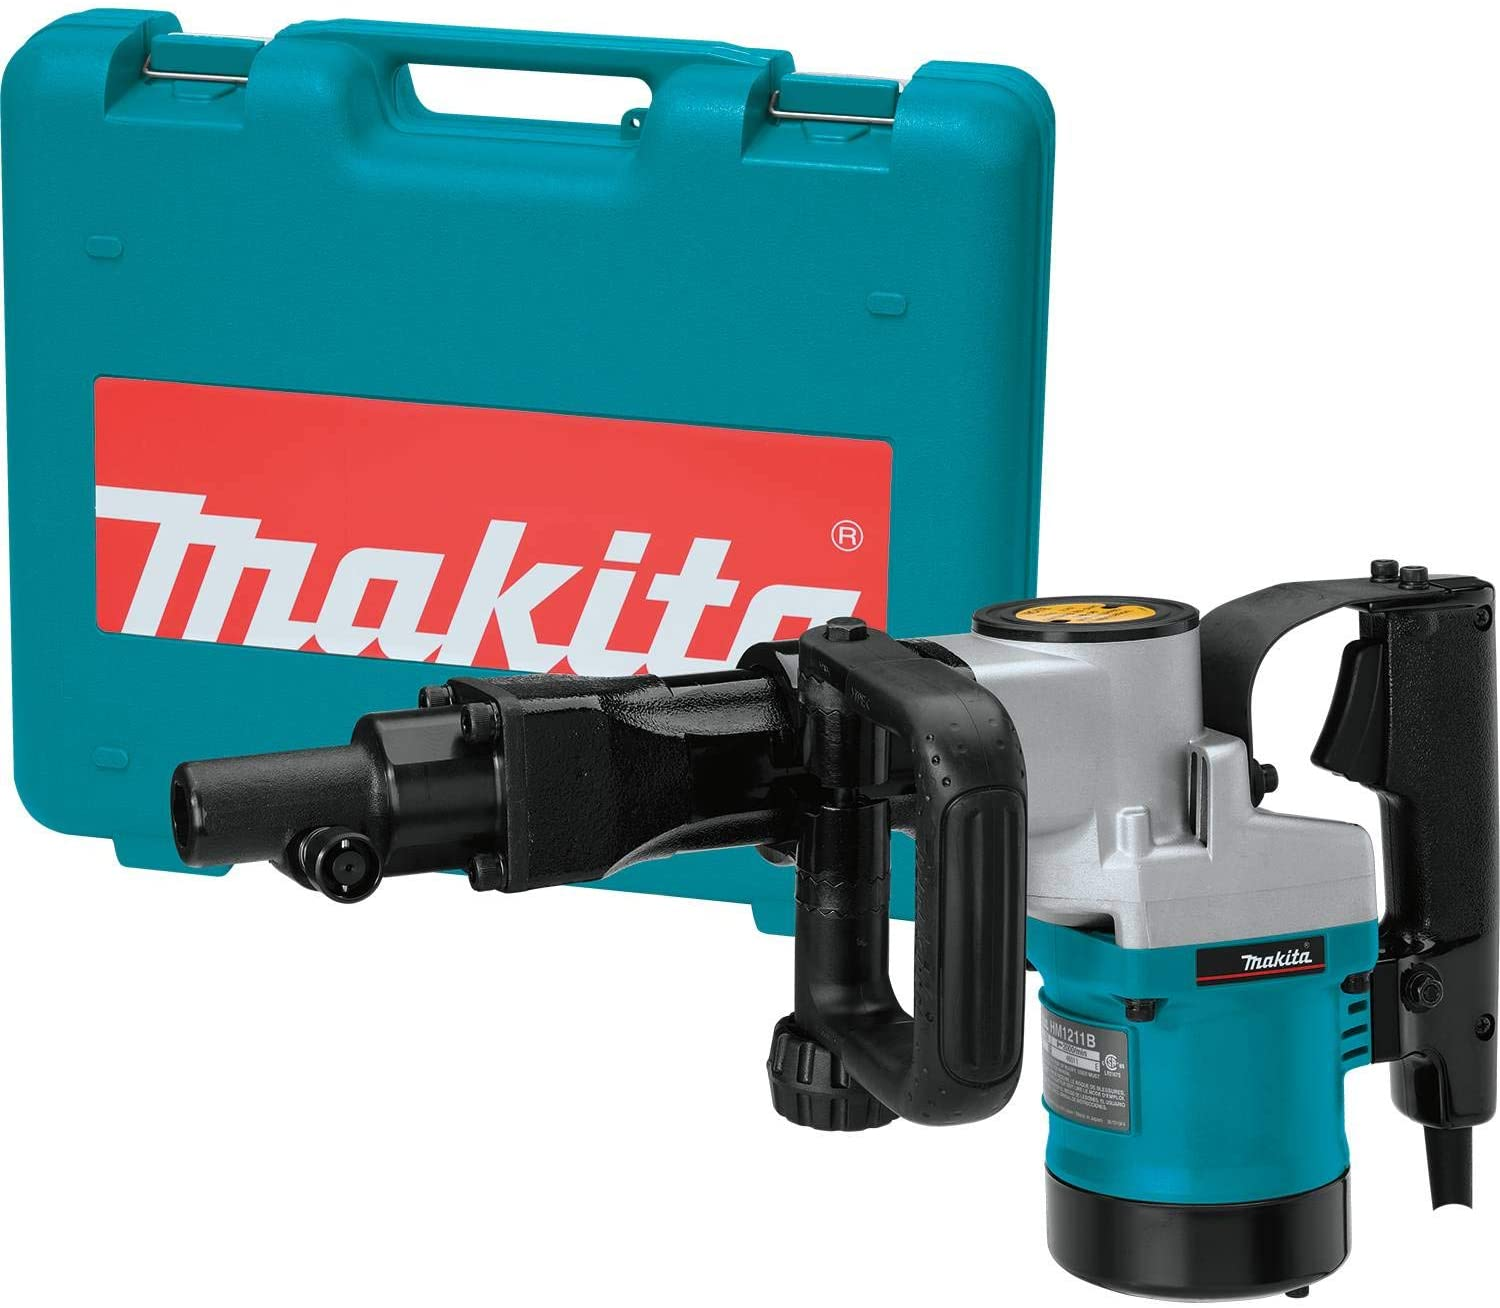 Makita HM1211B 20 lb. Demolition Hammer, Accepts 3 4 Hex Bits